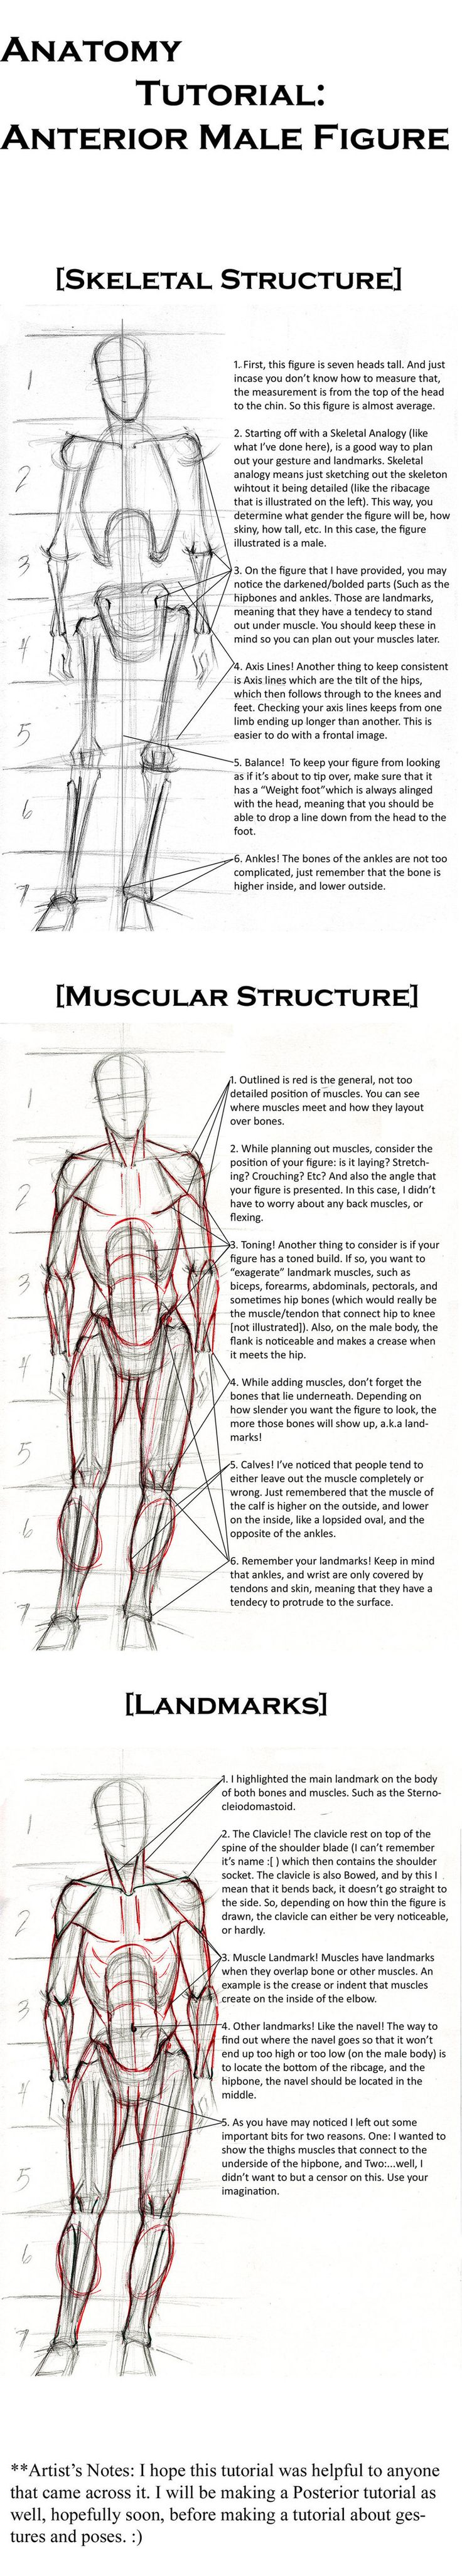 42 best anatomy images on Pinterest | Anatomy reference, Human ...